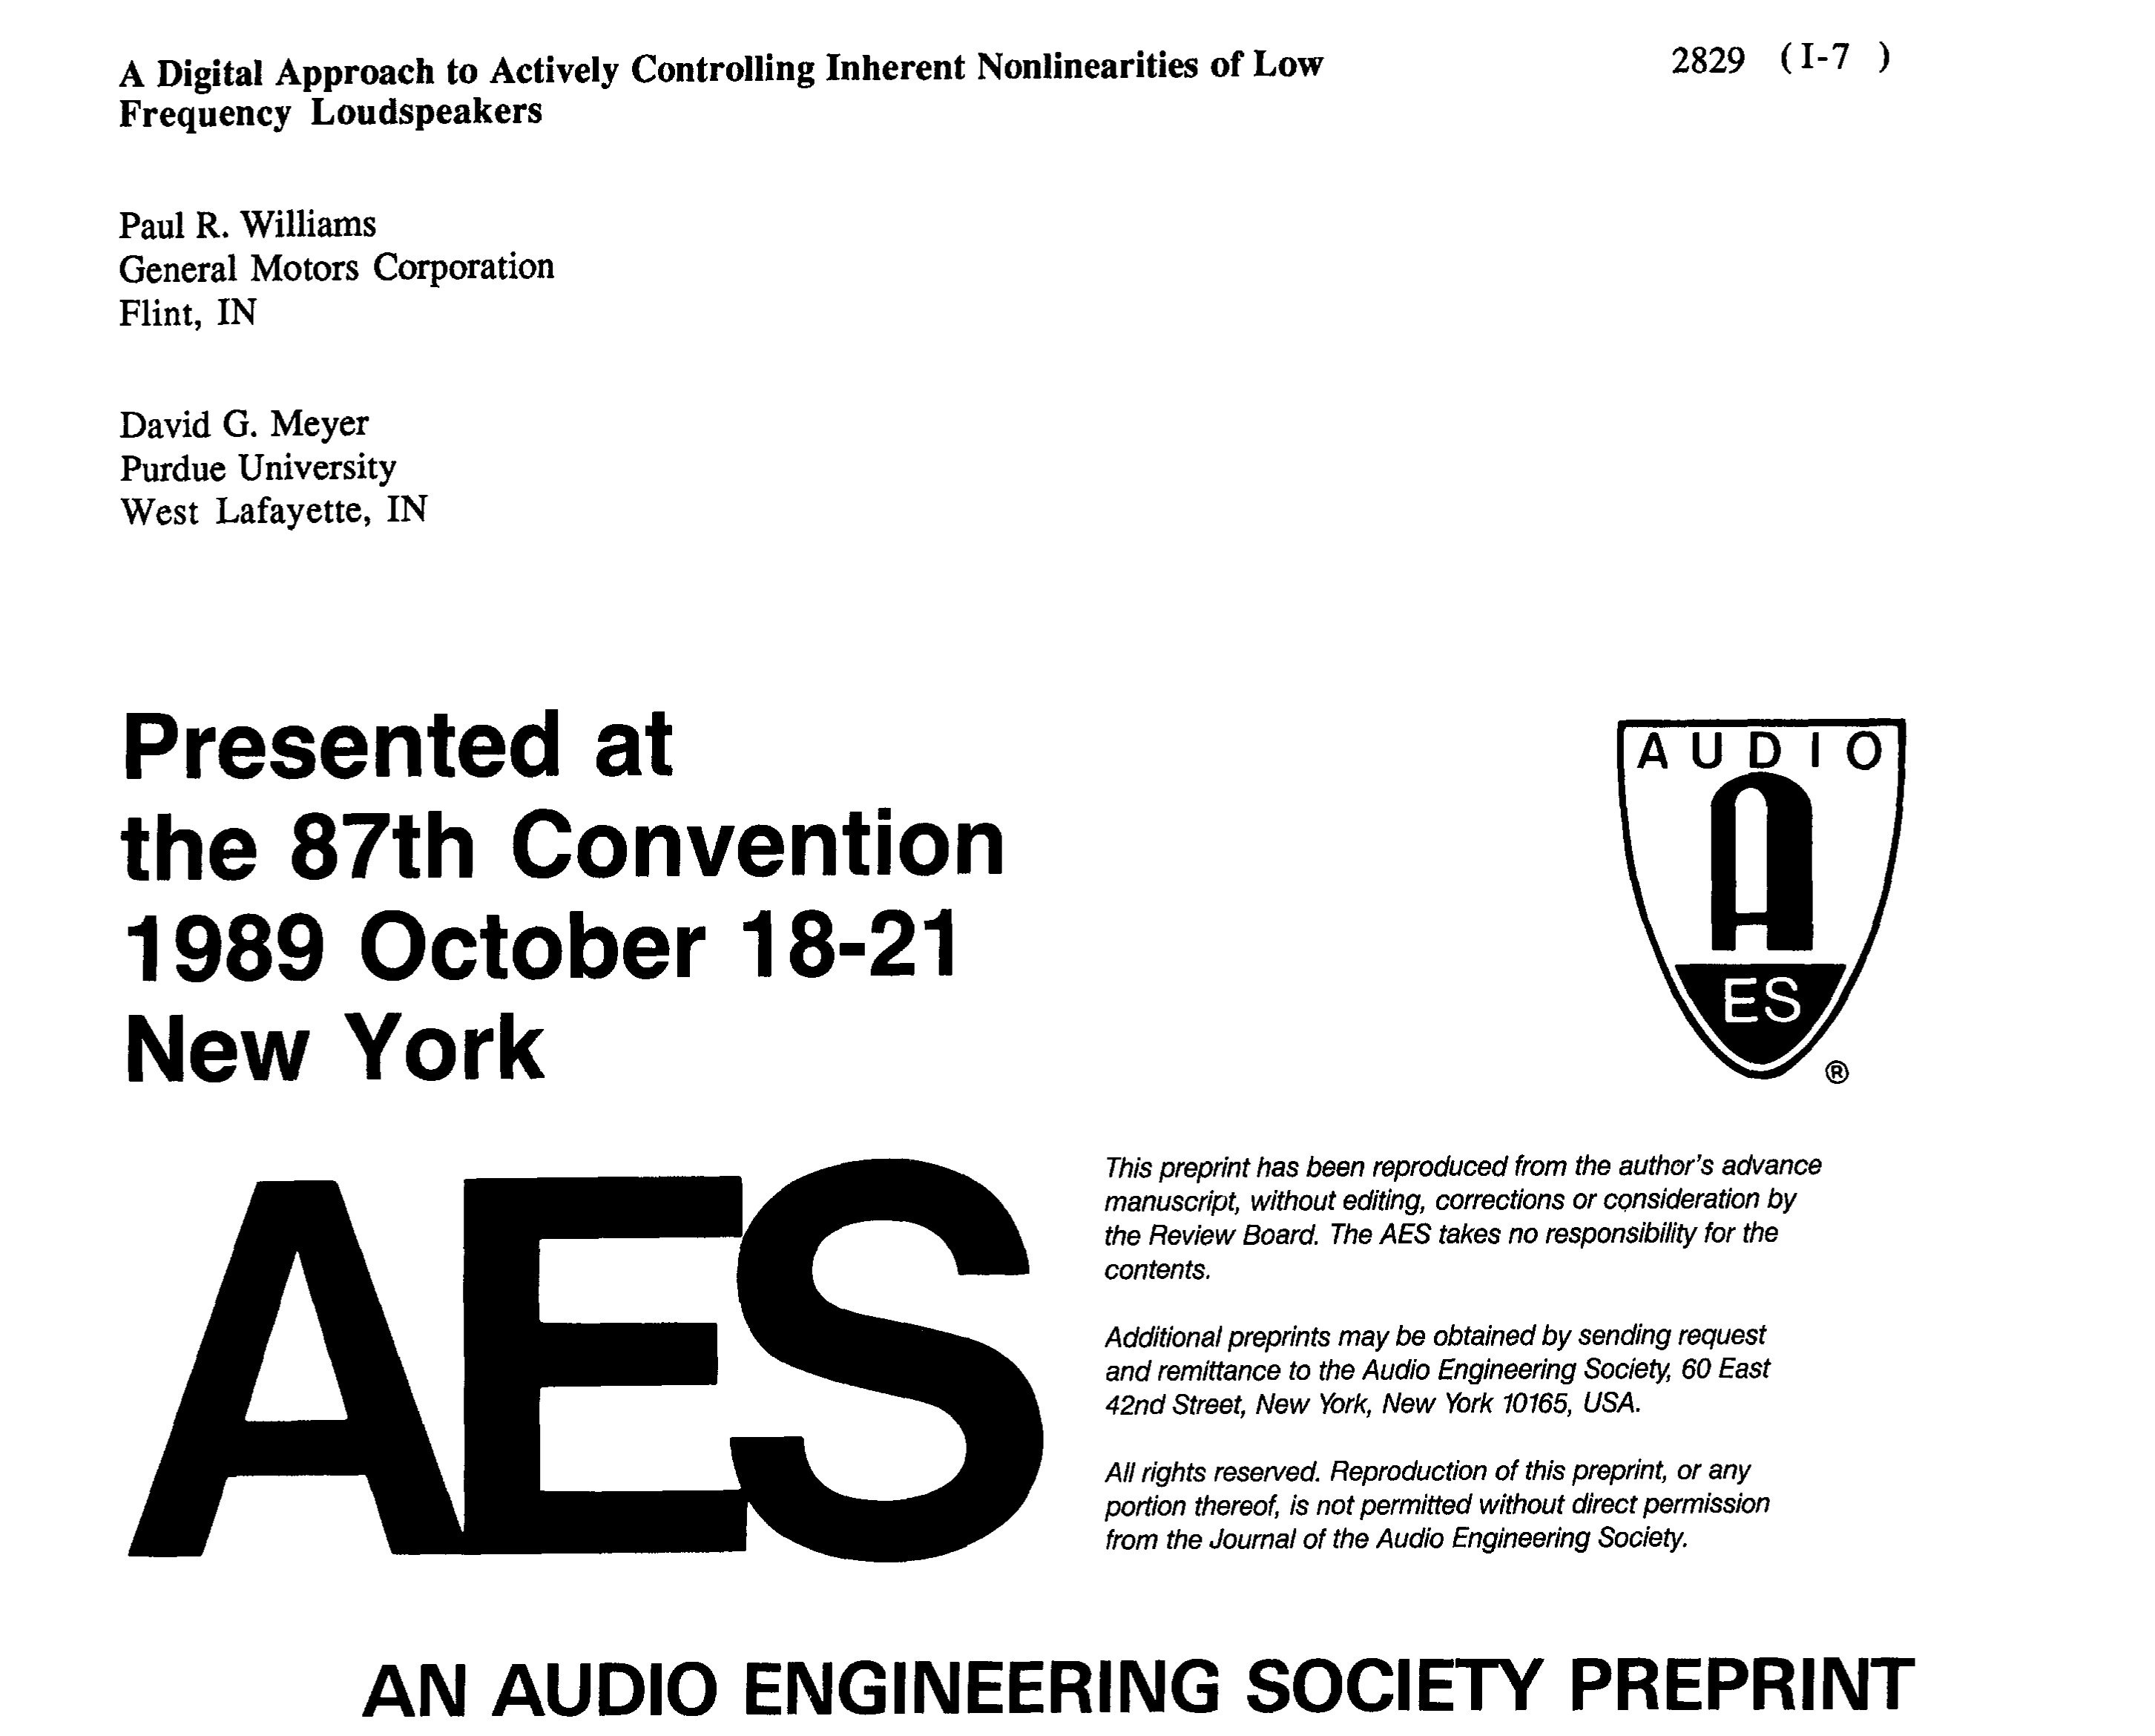 AES E Library A Digital Approach to Actively Controlling Inherent